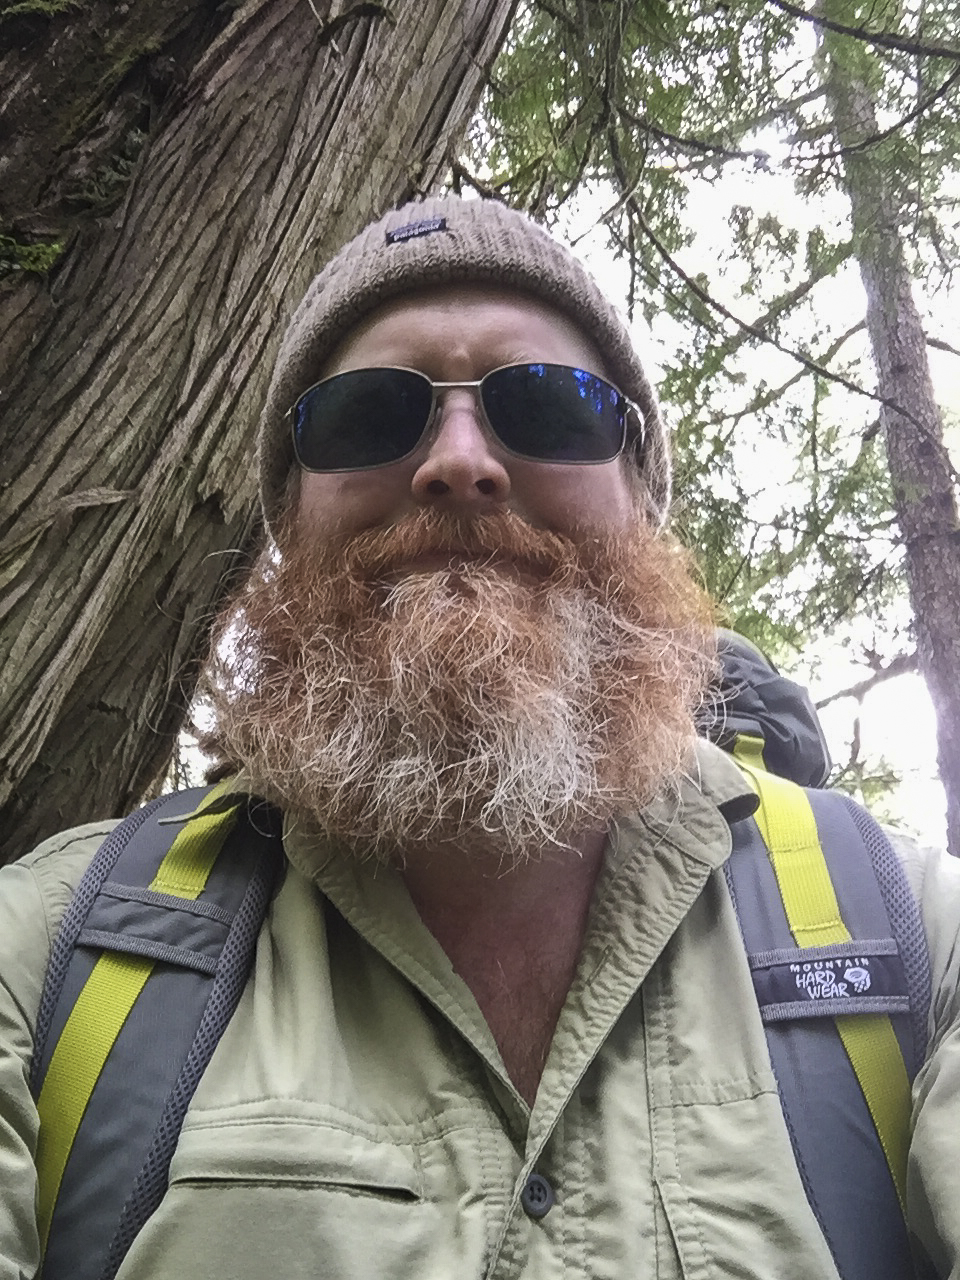 """Here's how to recognize me: I am 5'7"""" and have long red hair (usually a ponytail) and a big red beard (with some gray in it)."""